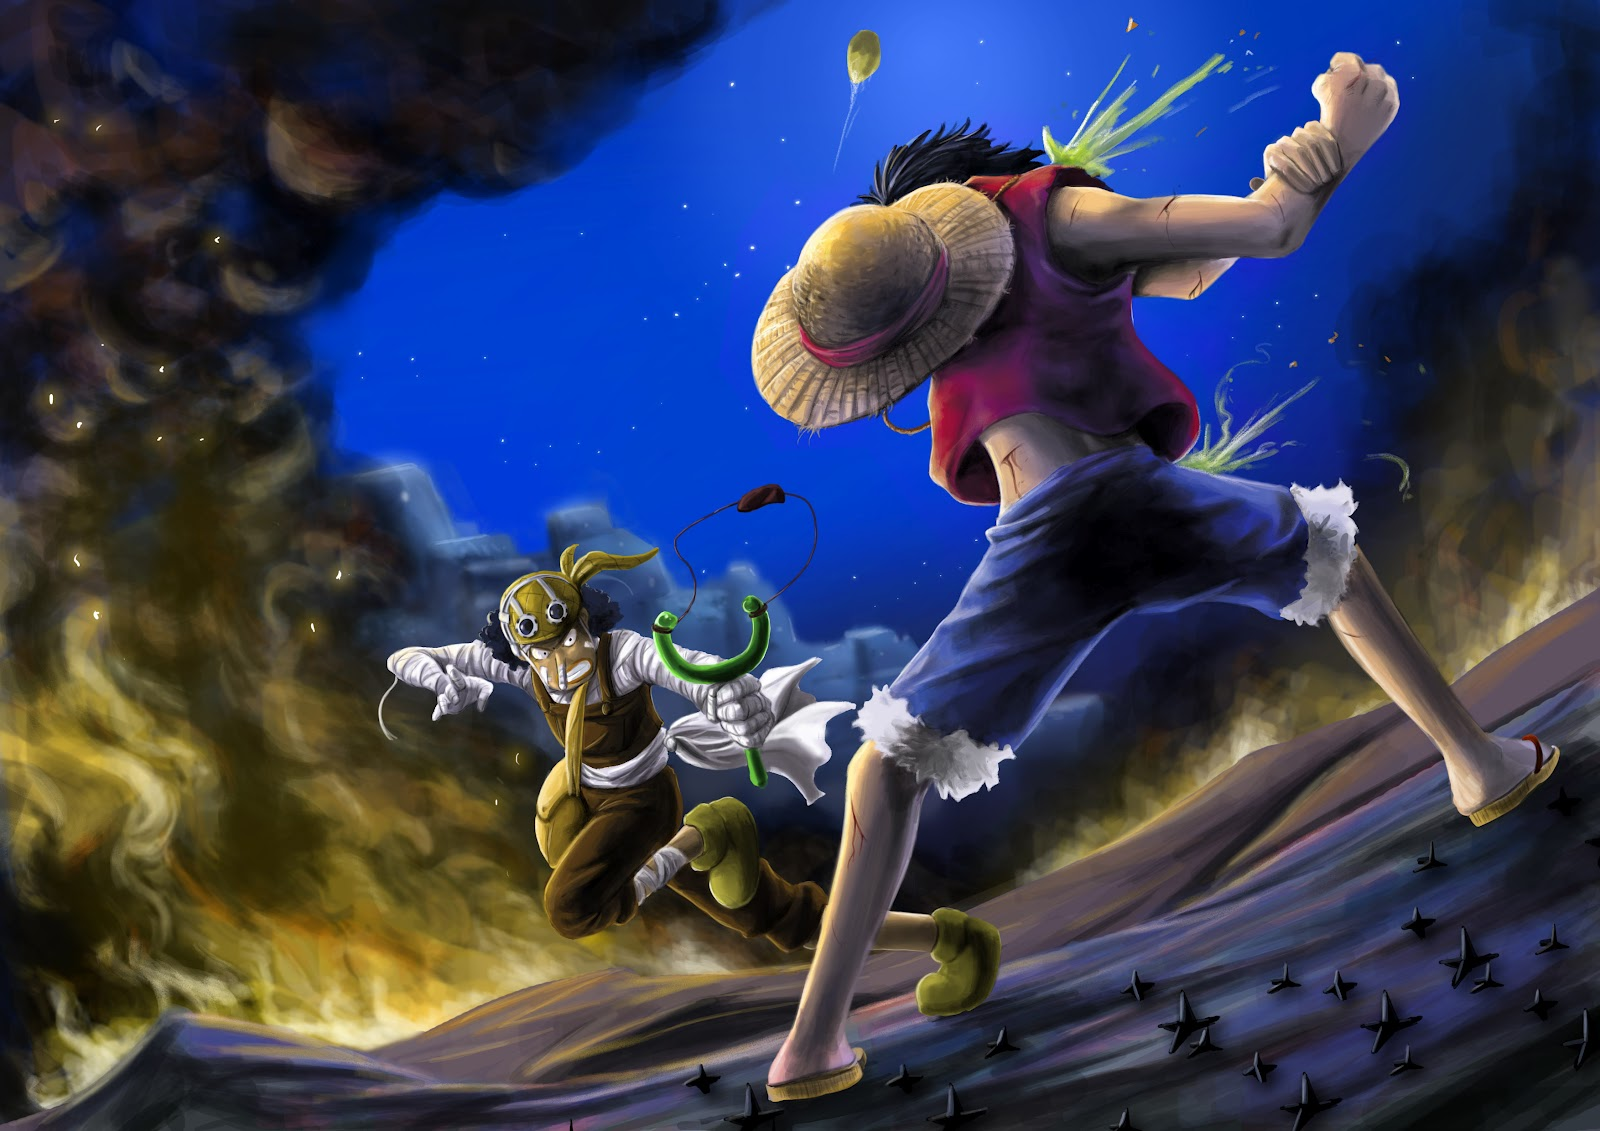 One Piece HD & Widescreen Wallpaper 0.55933558808254